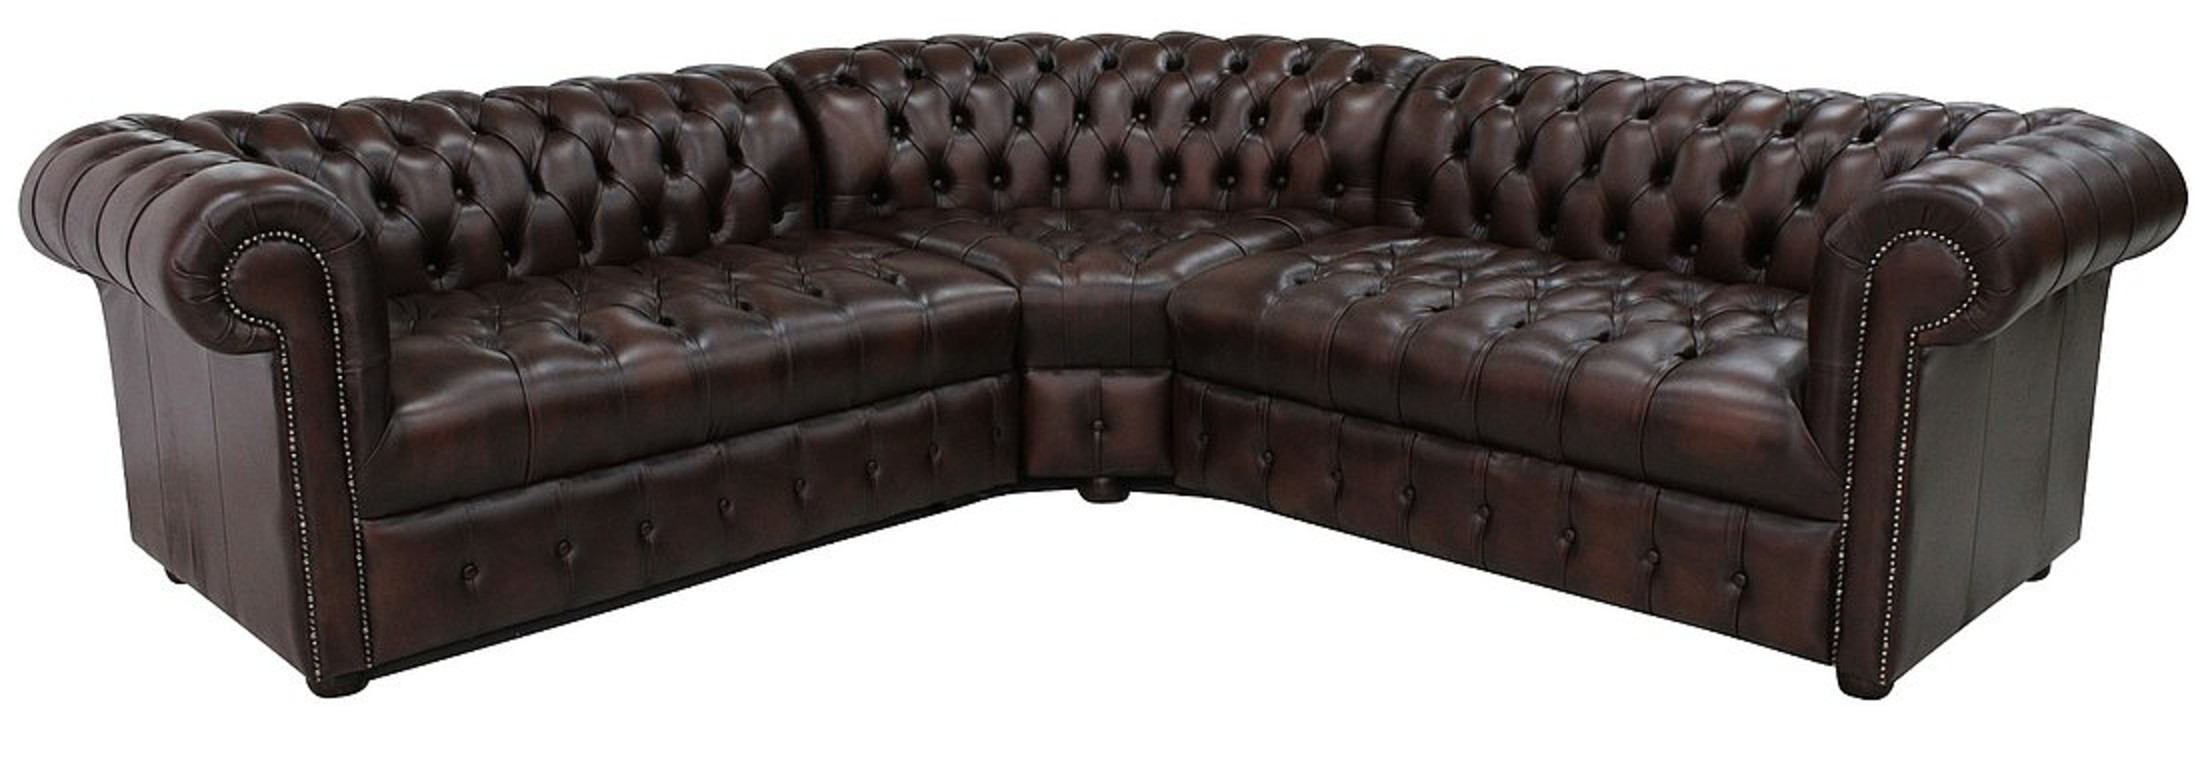 Chesterfield Corner Sofa Unit Buttoned Seat 2 Seater + Corner + 2 Seater  Antique Brown Leather